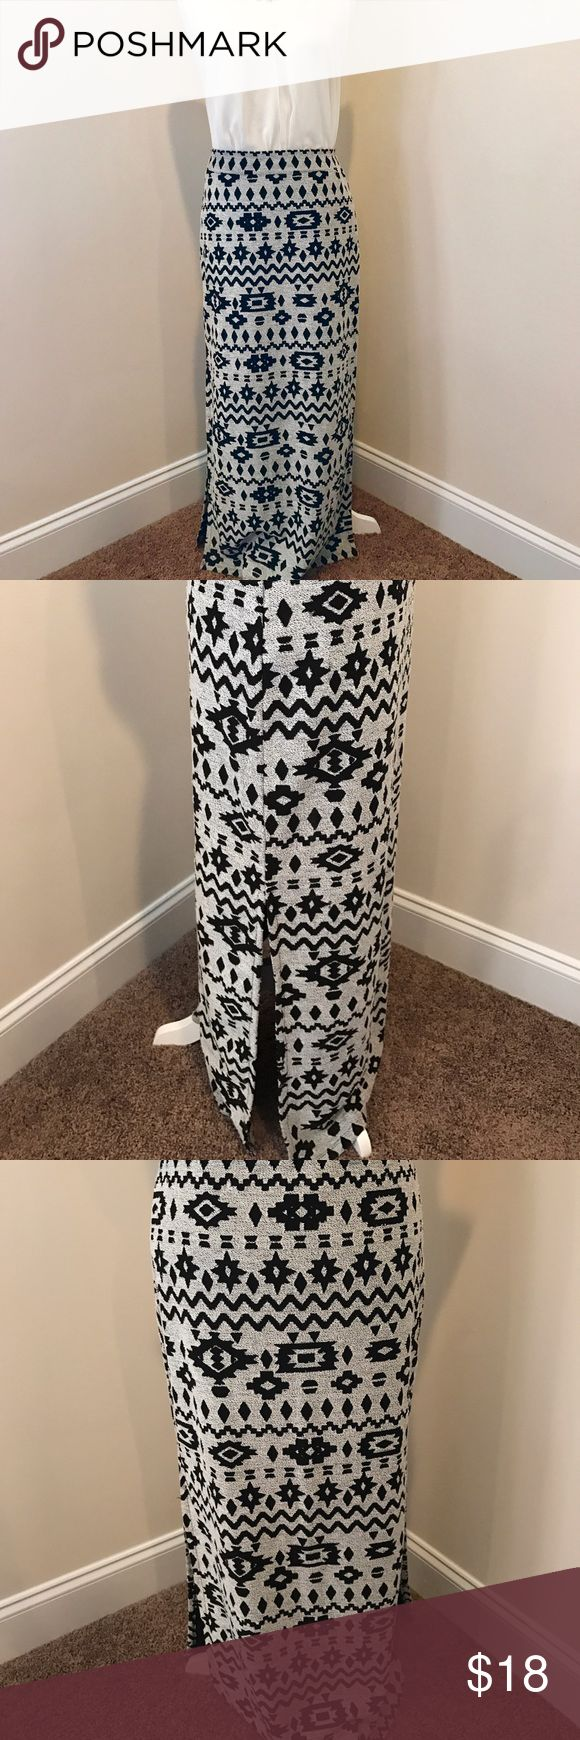 🛍 grey / black fitted Aztec maxi skirt Gorgeous fitted maxi skirt with a peppered grey base color and black Aztec pattern. The skirt is slitted at the bottom 1/4th for a fun and flirty eye-catching pop of texture.                                                🎀                                                                                   Previously loved, but in great condition 💕 Kiss & Cry Skirts Maxi